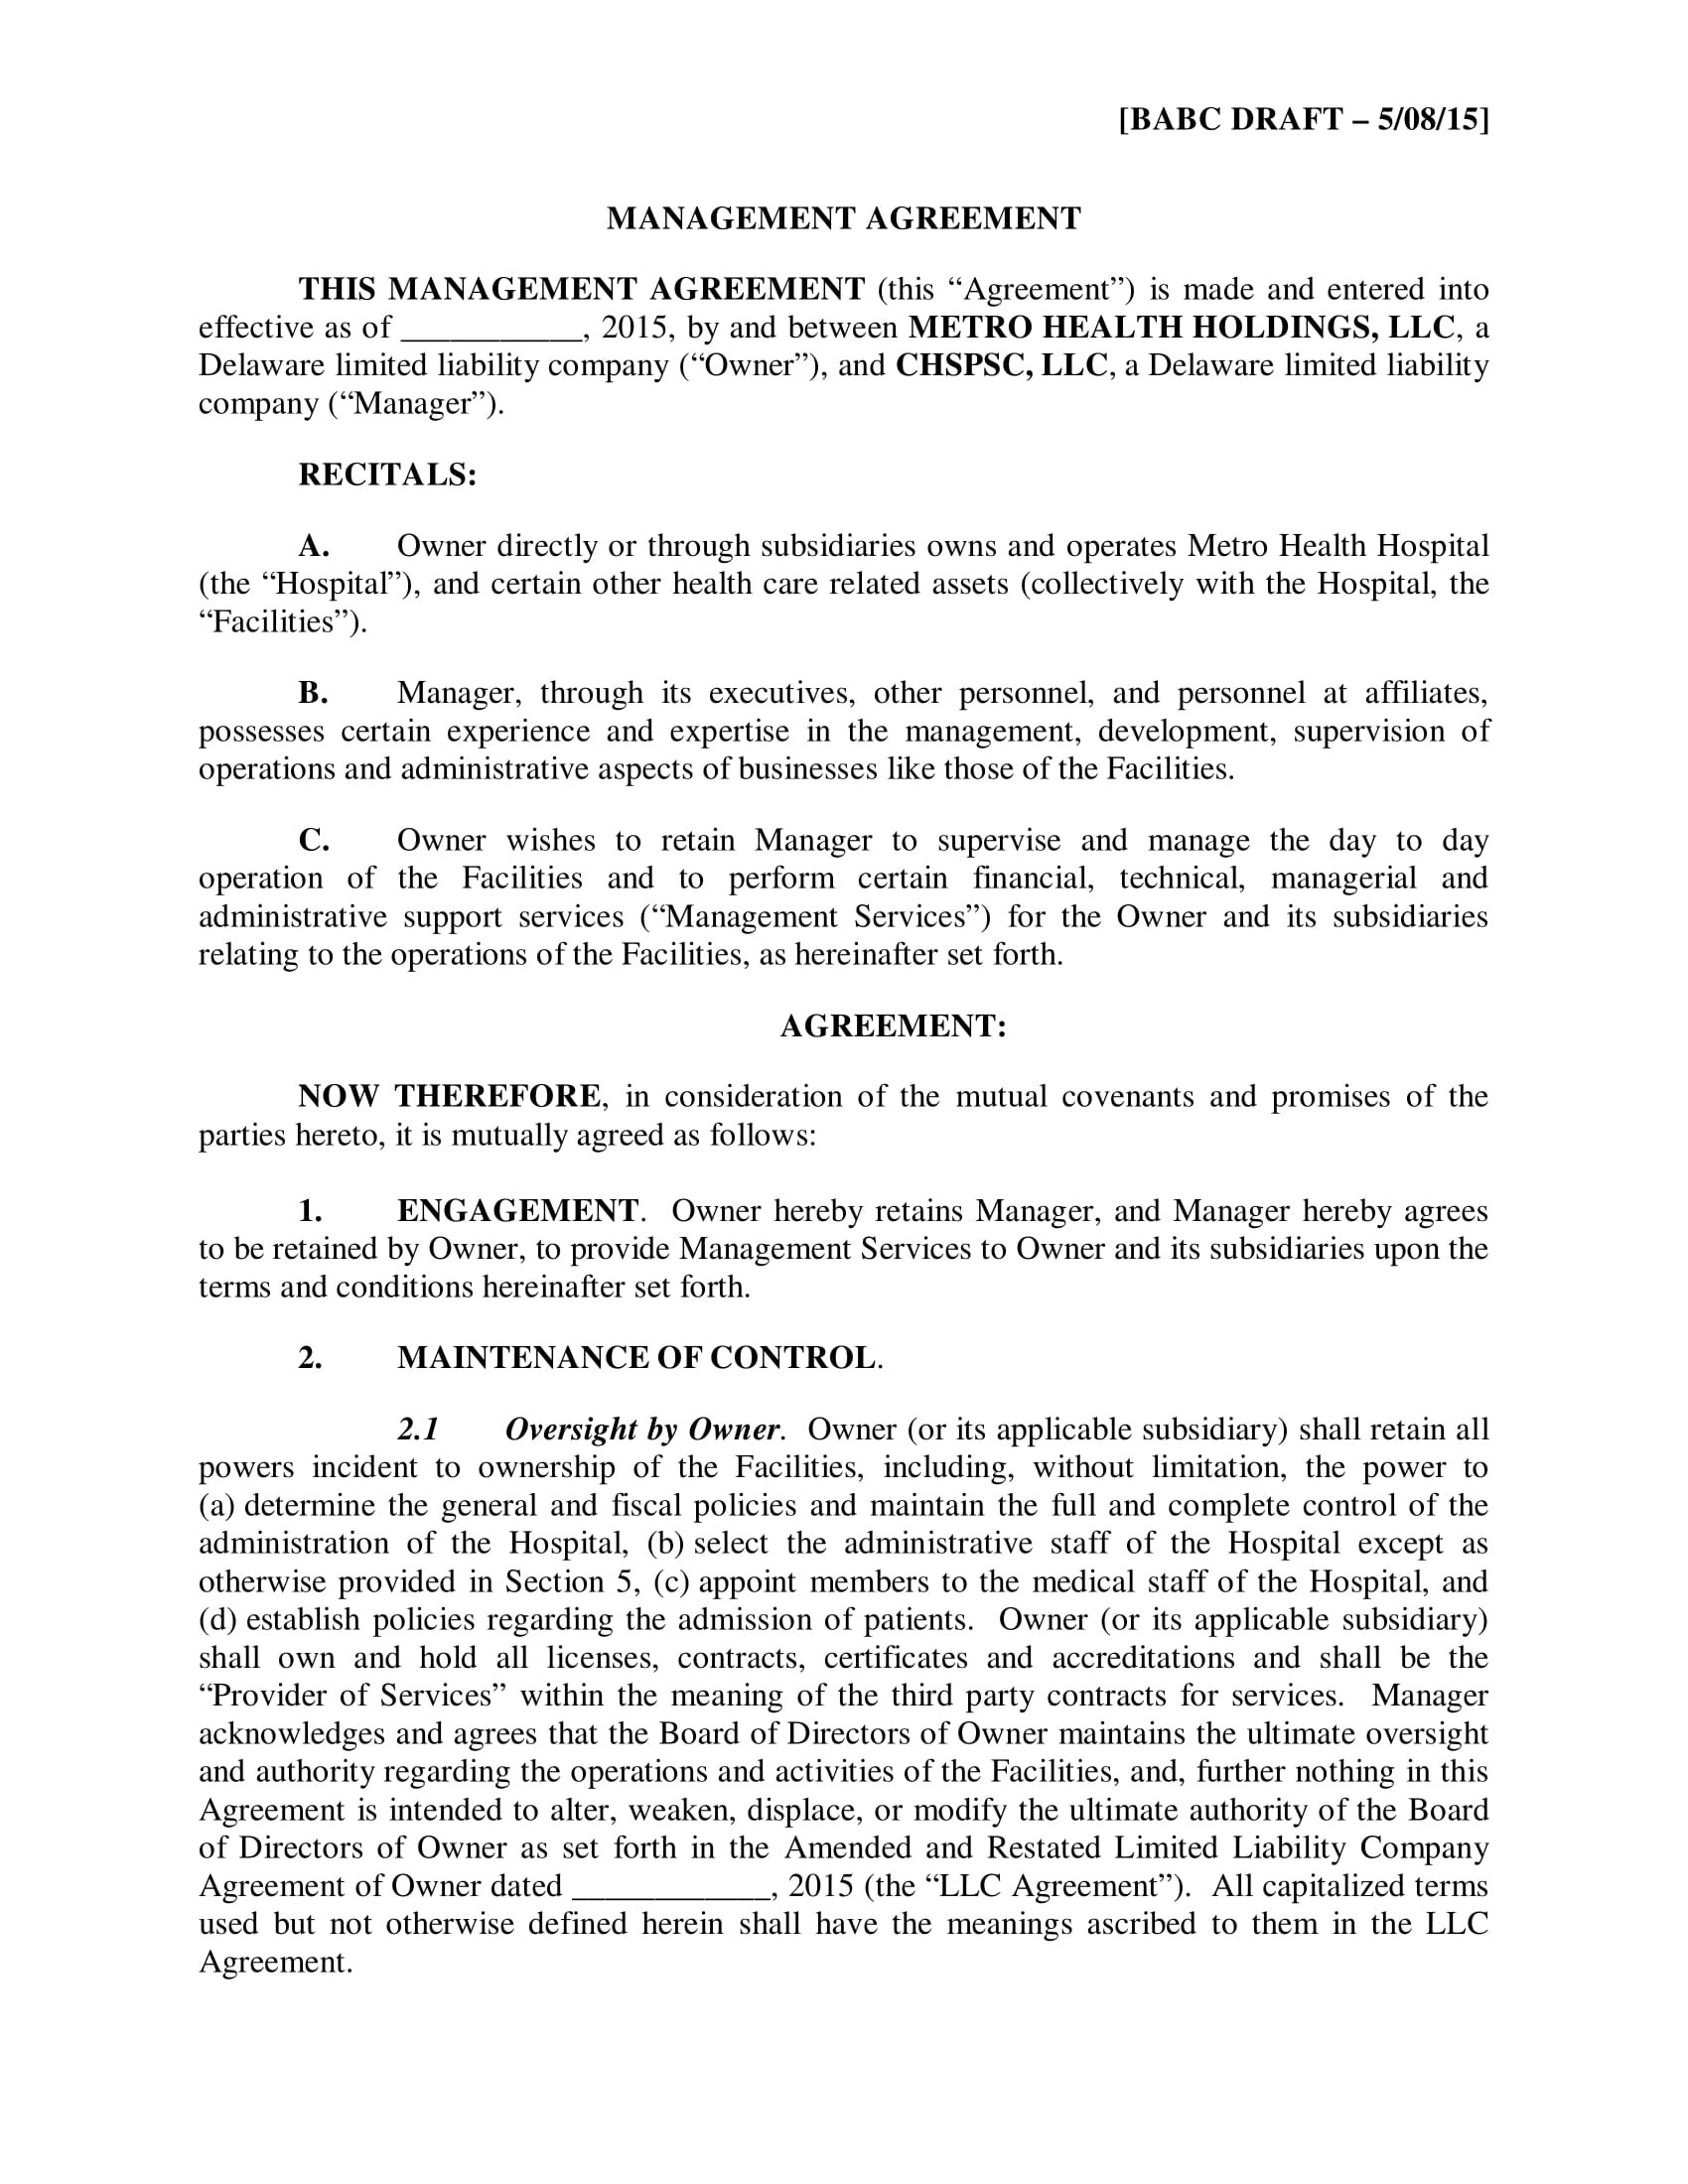 Business Manager Contract Templates  Pdf Docs  Examples With Regard To Business Management Contract Template